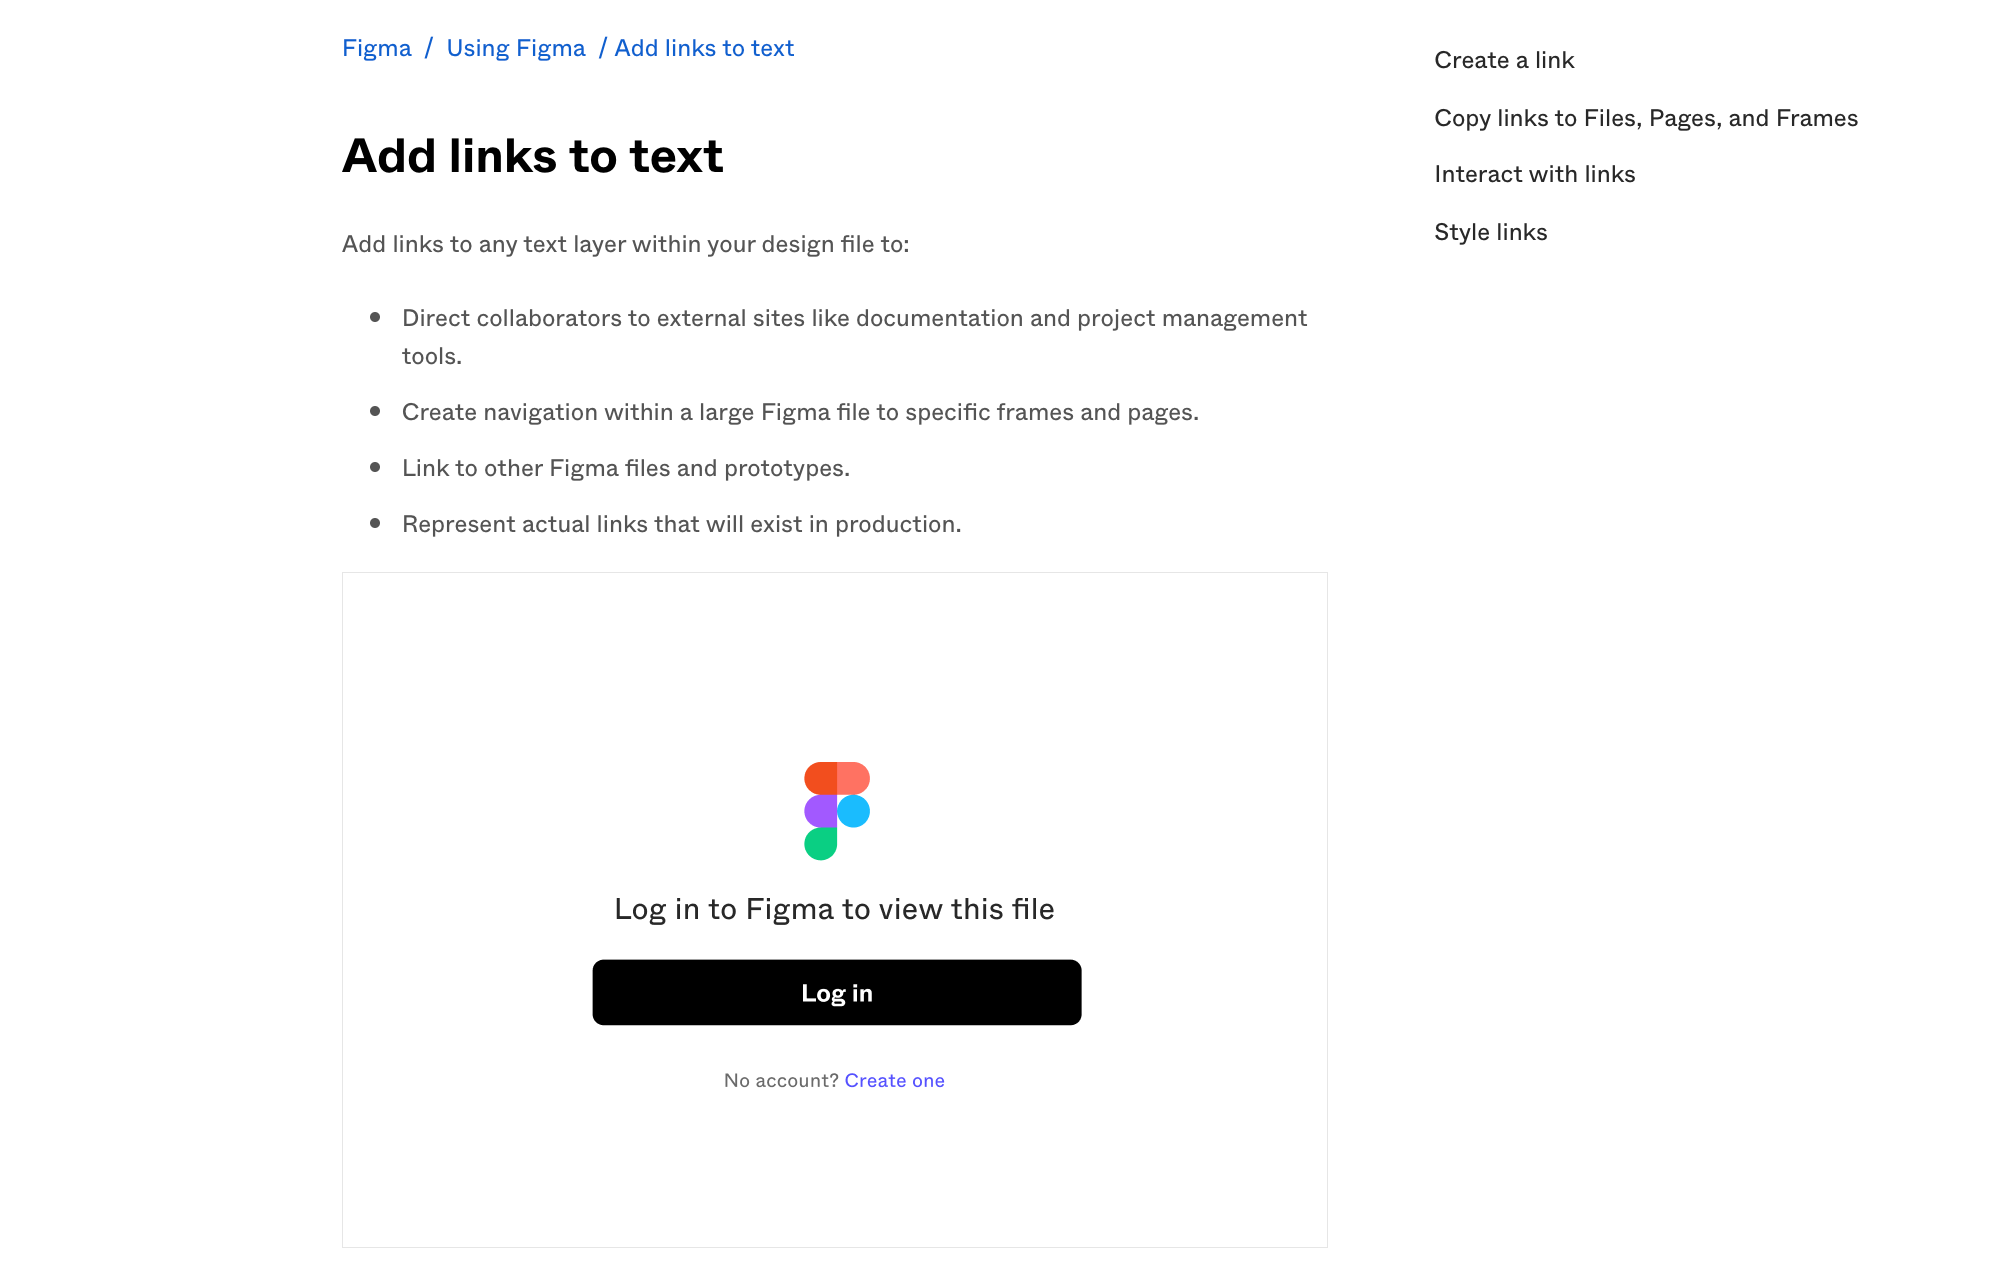 Image showing an embed in an article with a prompt to log in to Figma to view